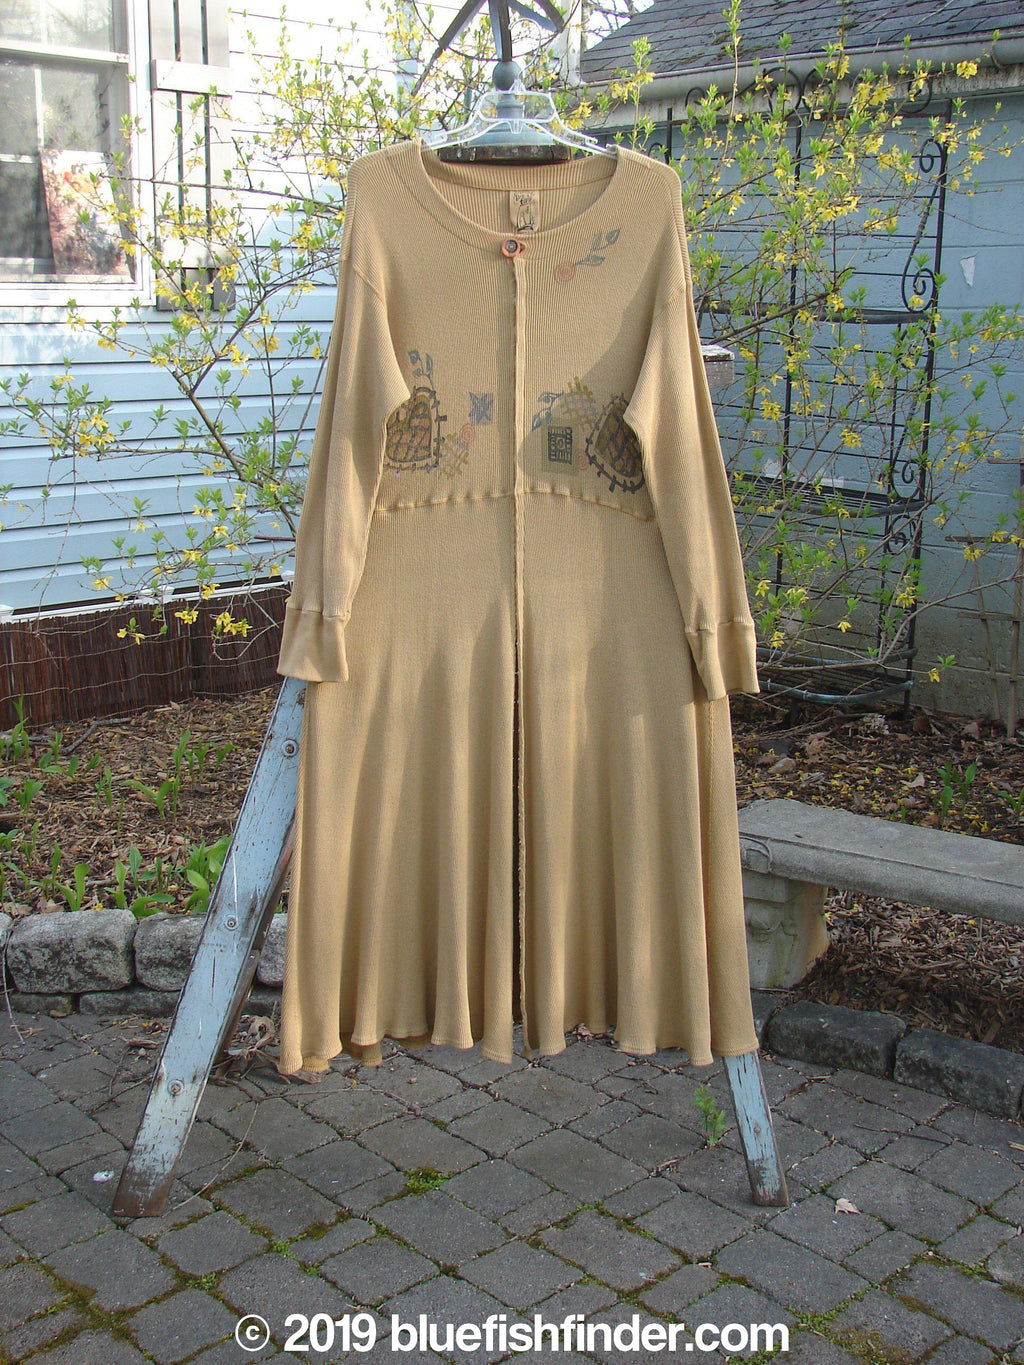 Vintage Blue Fish Clothing 1995 Soliloquy Dress Heart Burnished Gold Size 2- Bluefishfinder.com